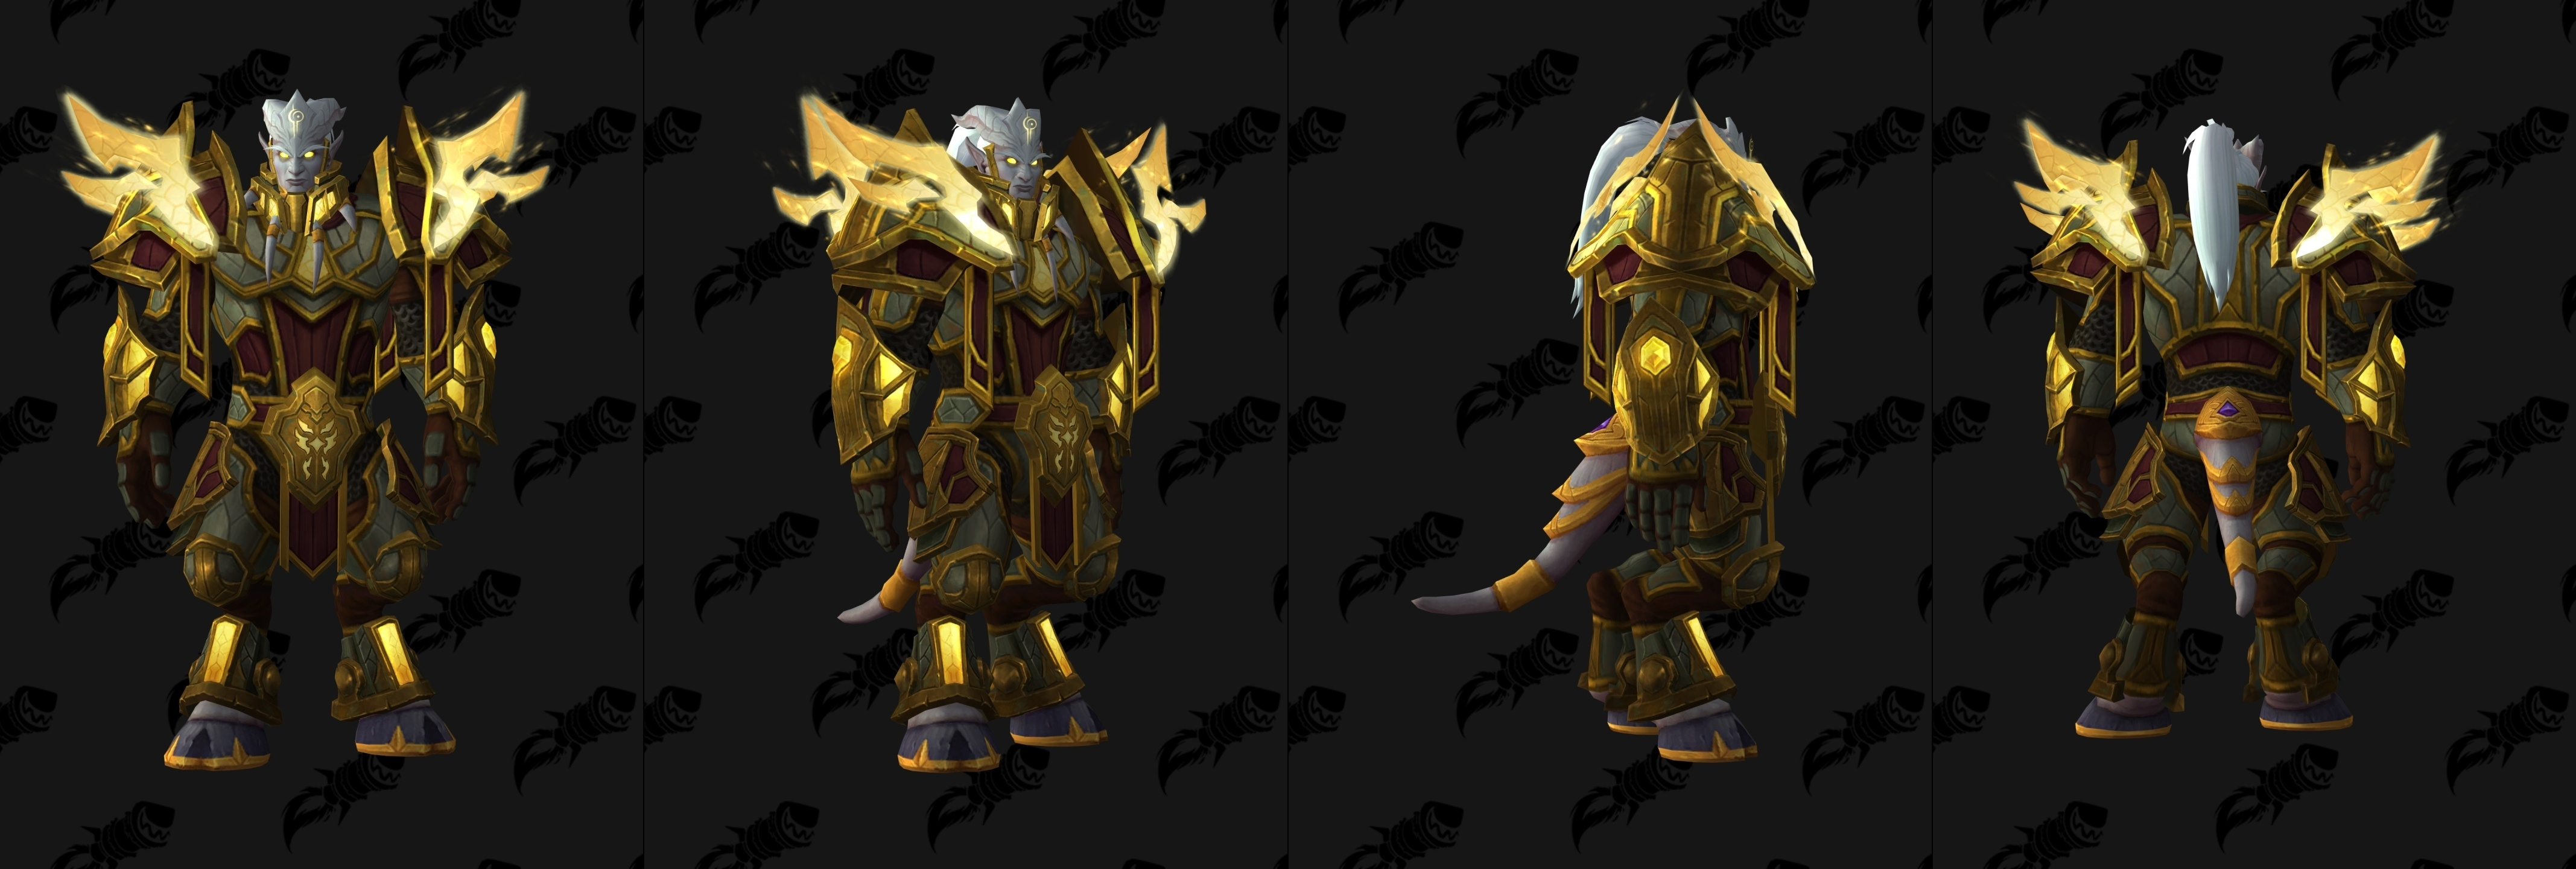 lightforged-draenei-allied-race-wow